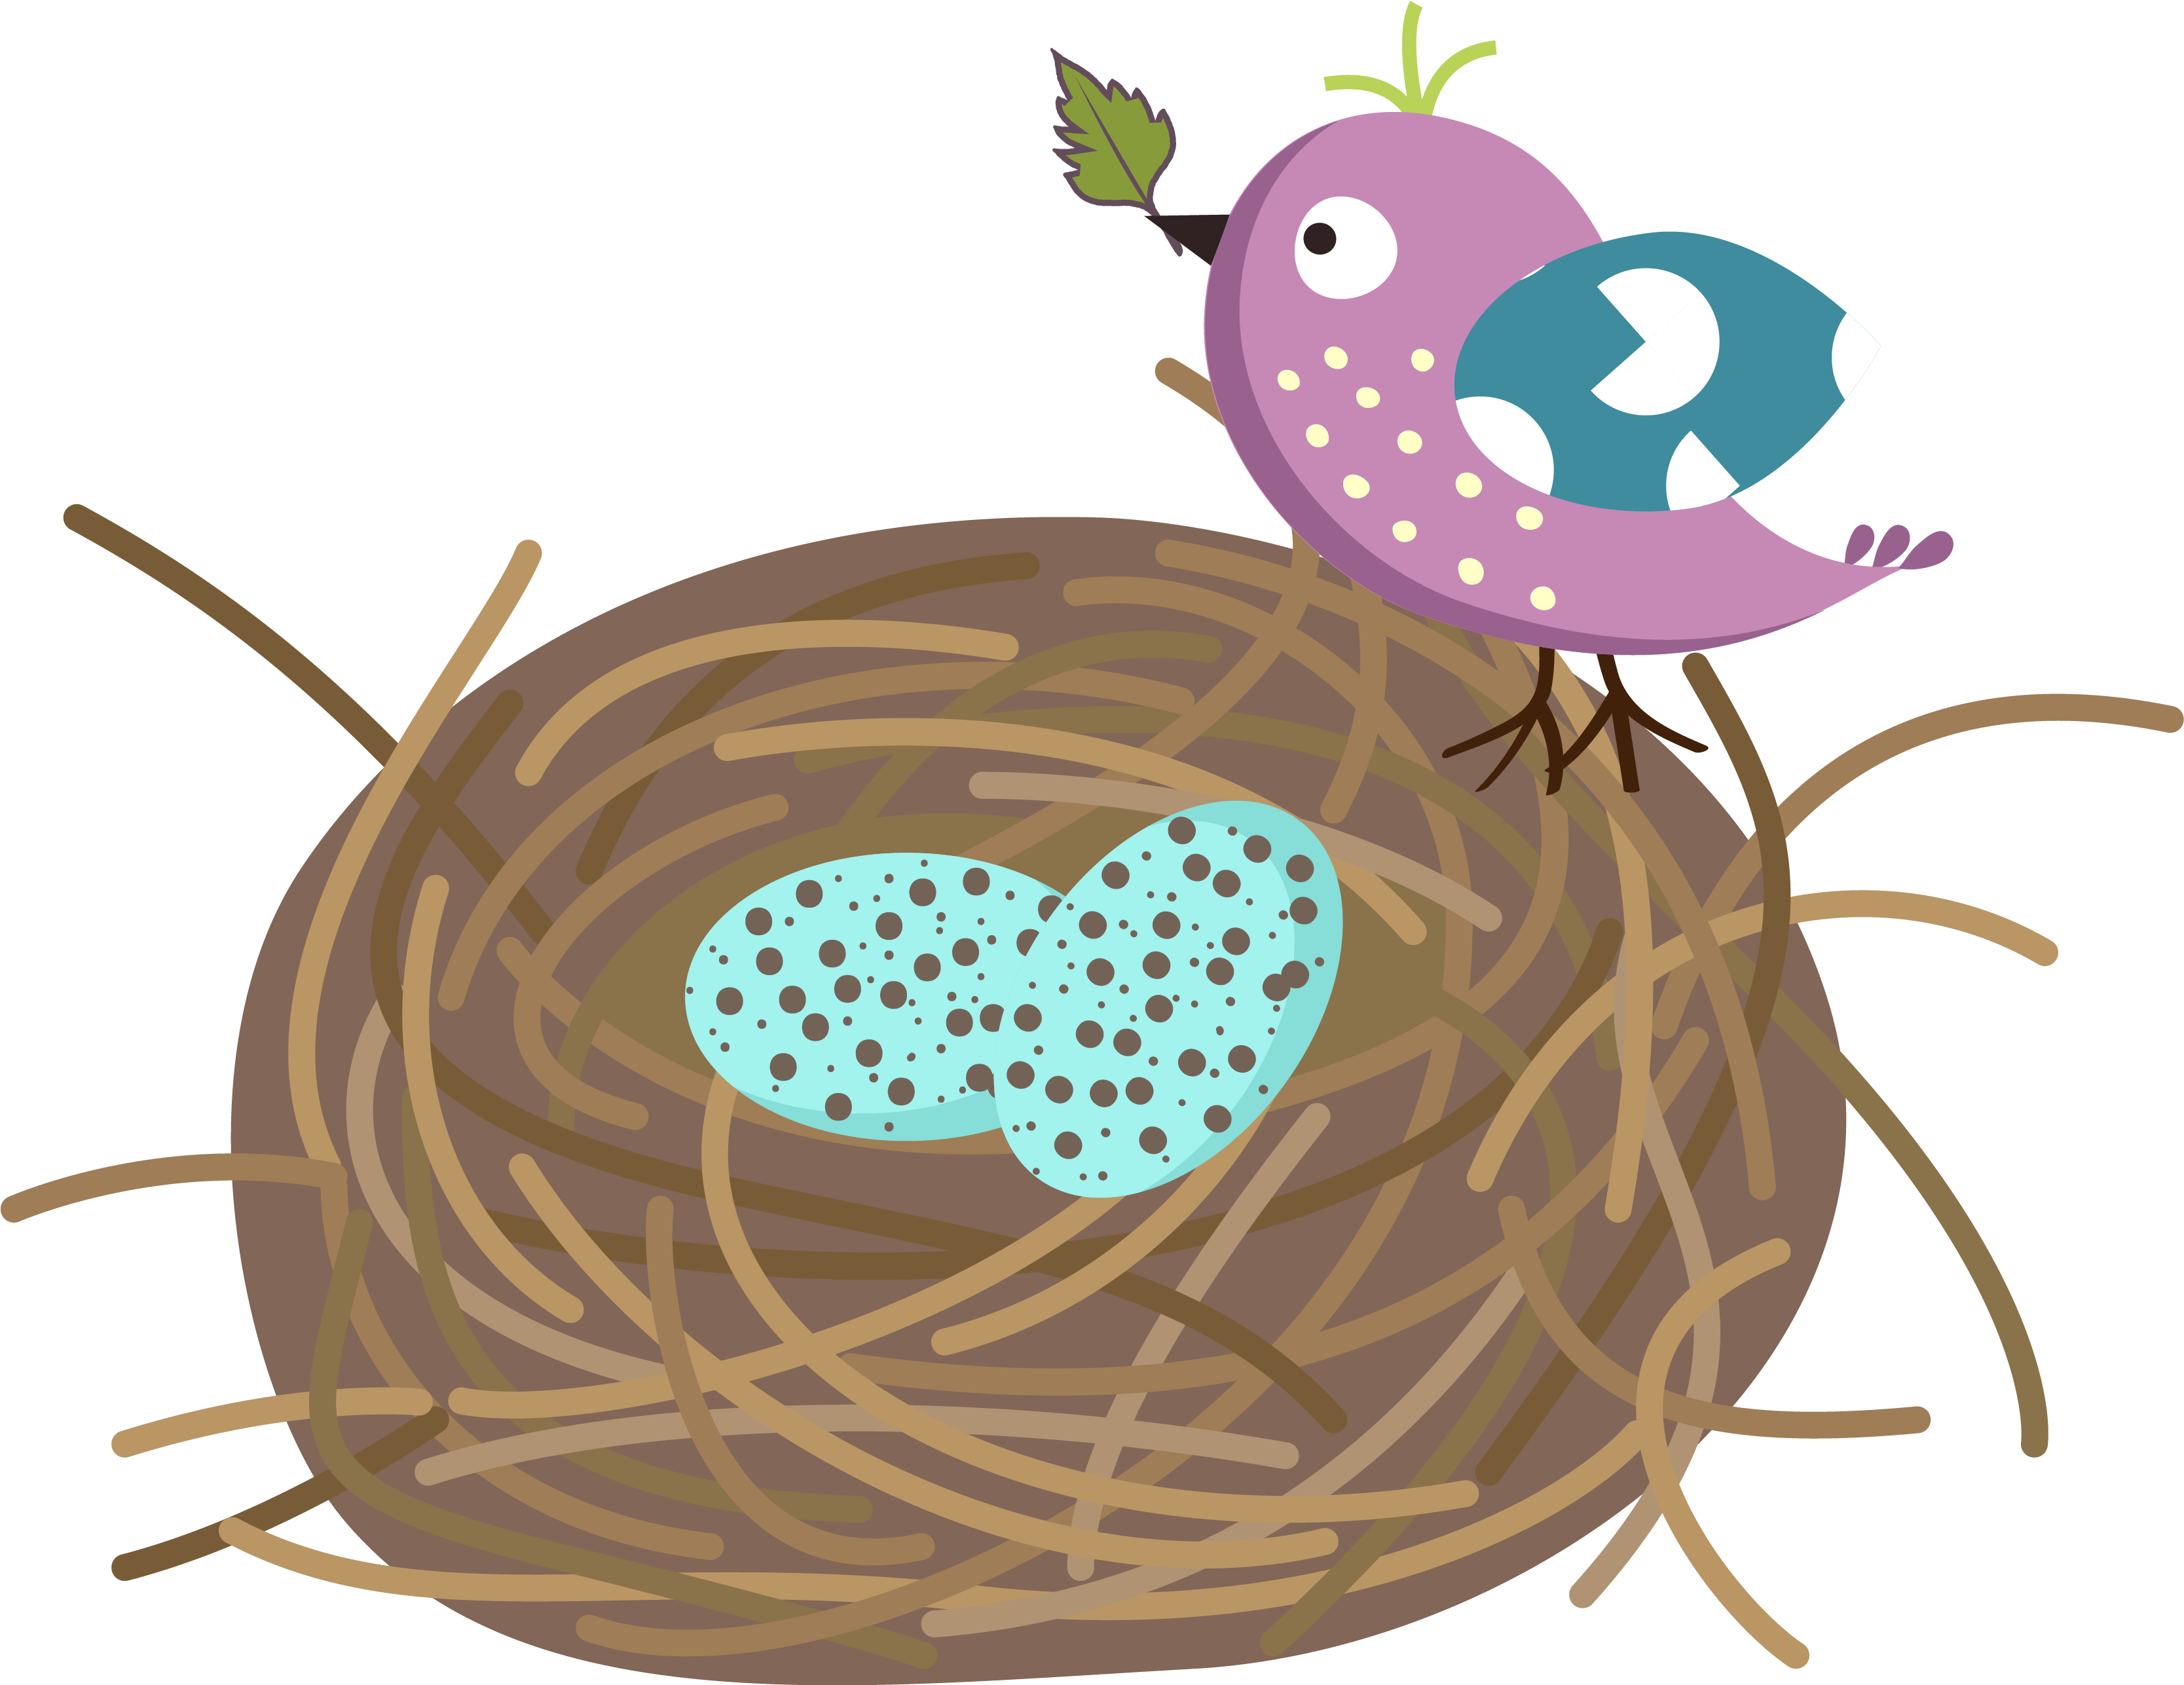 Clipart Of Birds Black And White Bird Nest Free Download - Bird In A Nest  Clipart Black And White - Free Transparent PNG Clipart Images Download